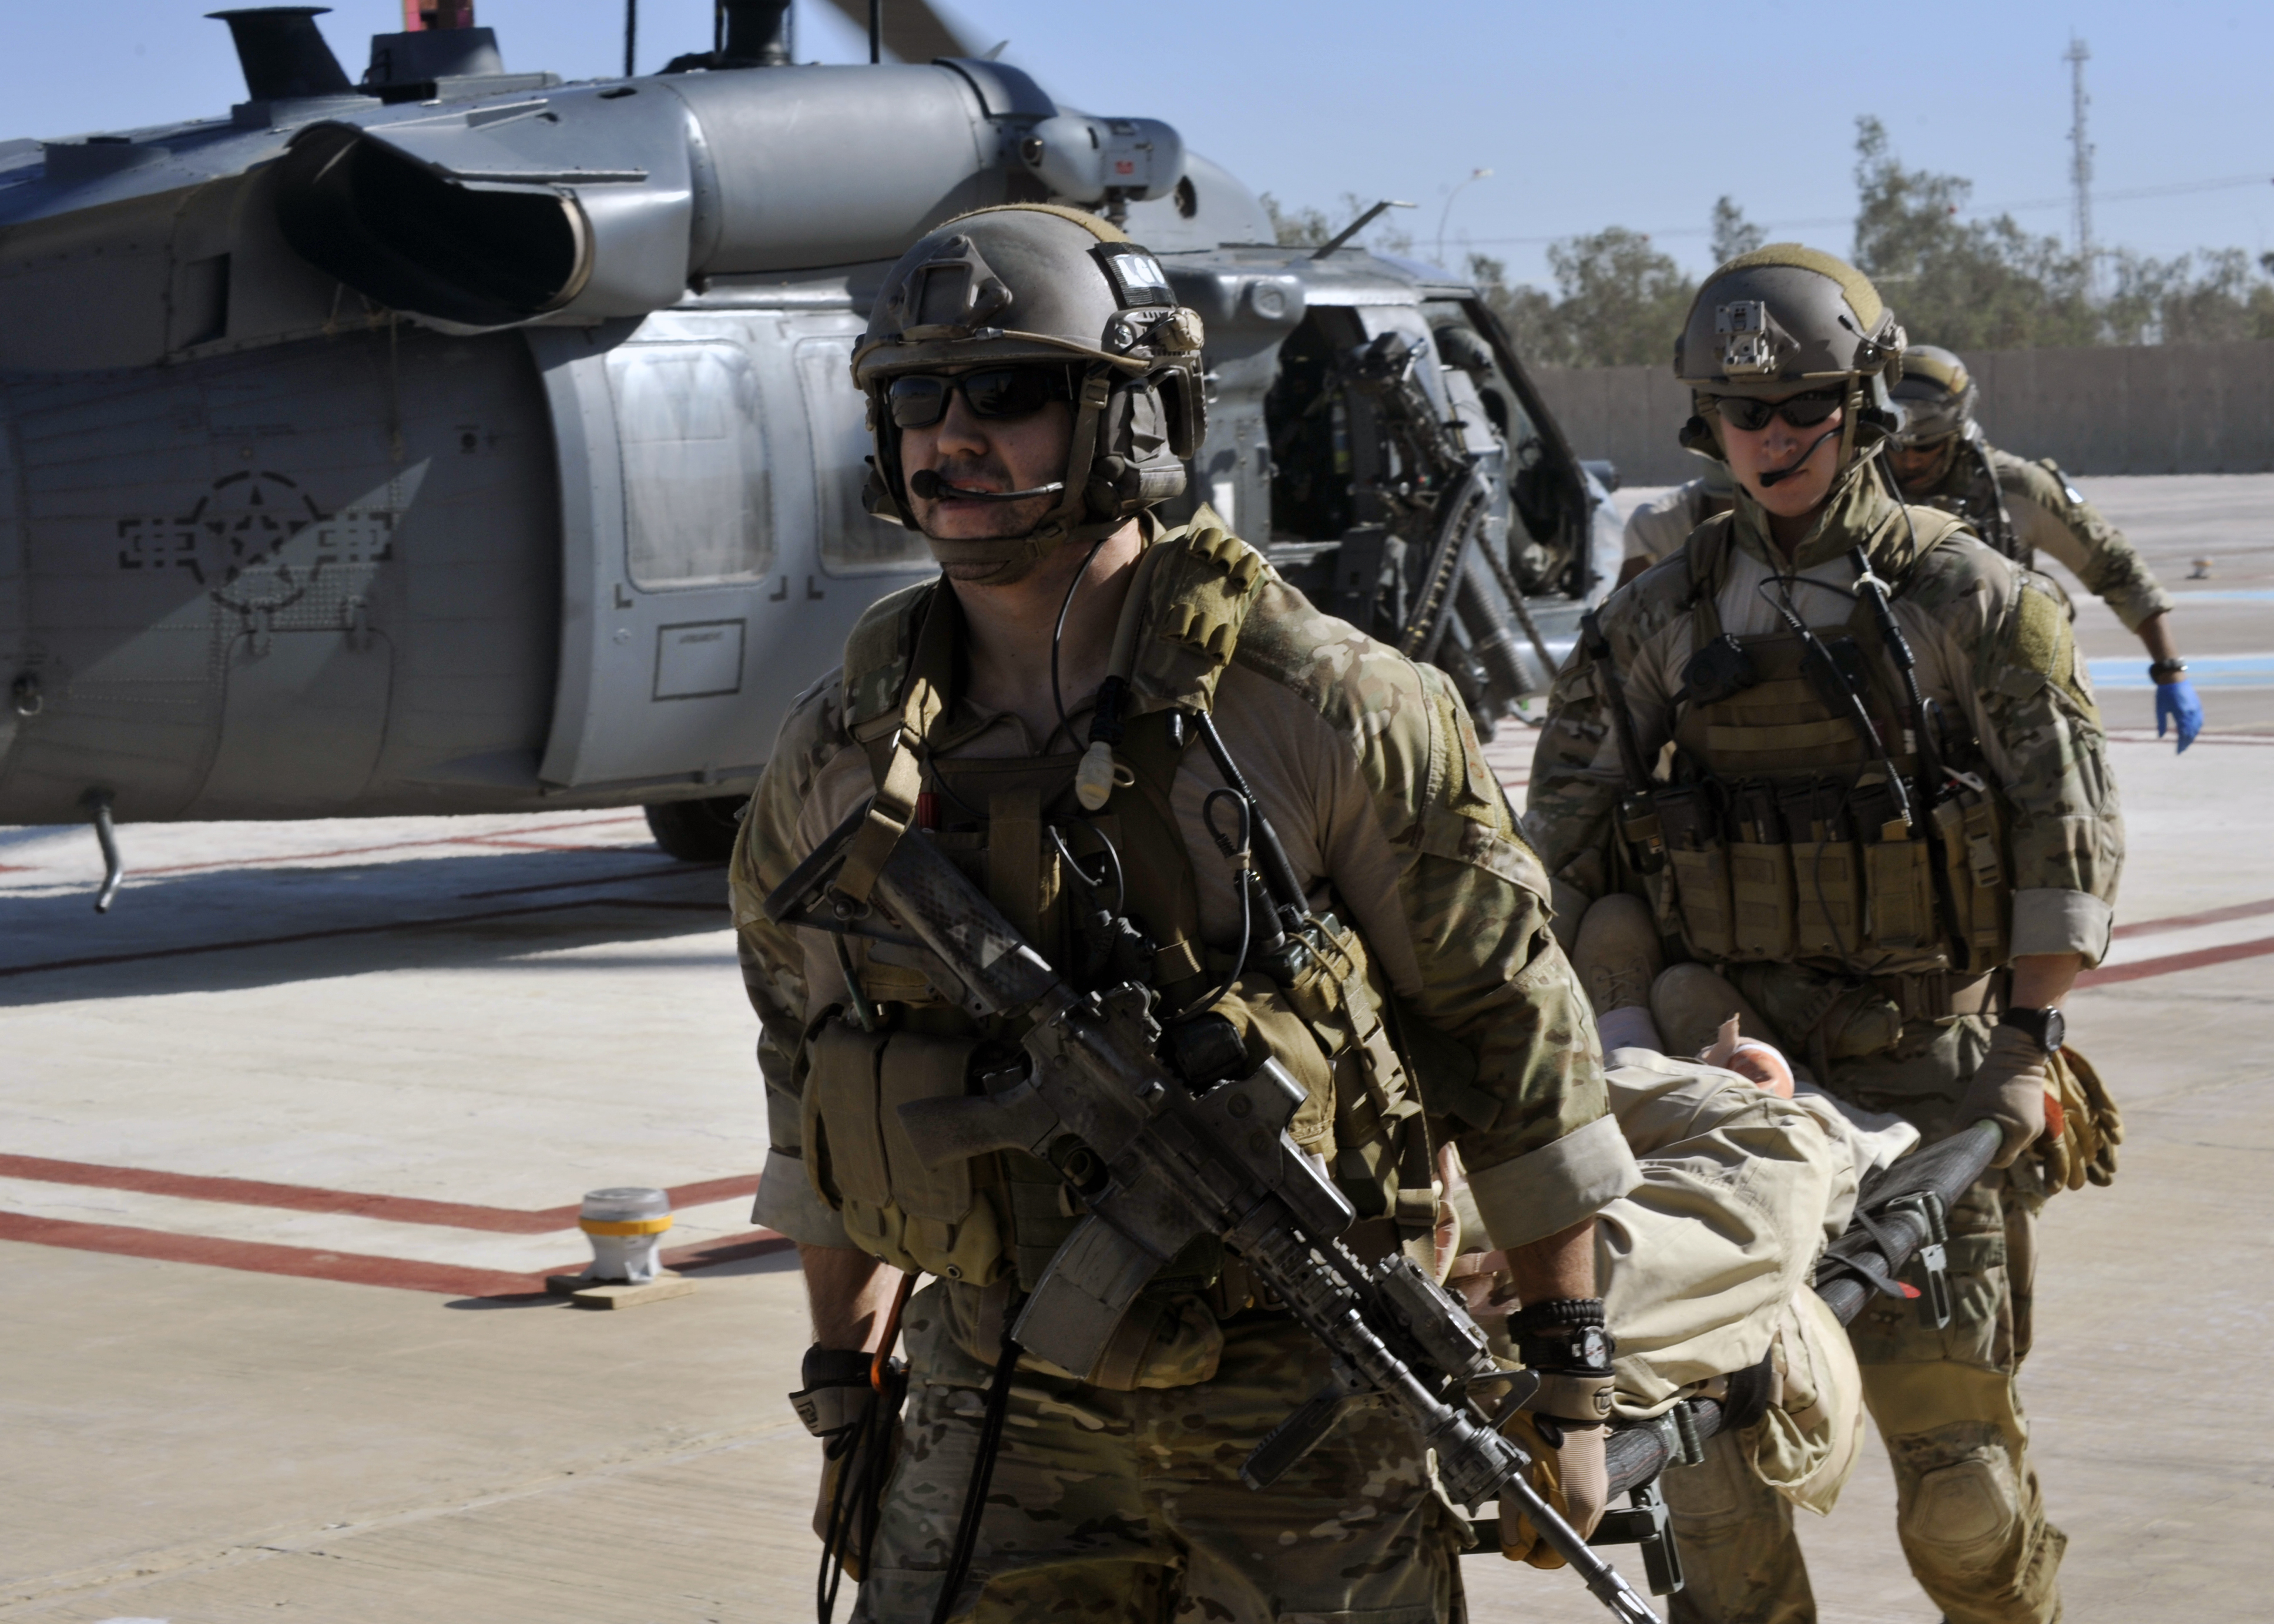 pararescue air force bases